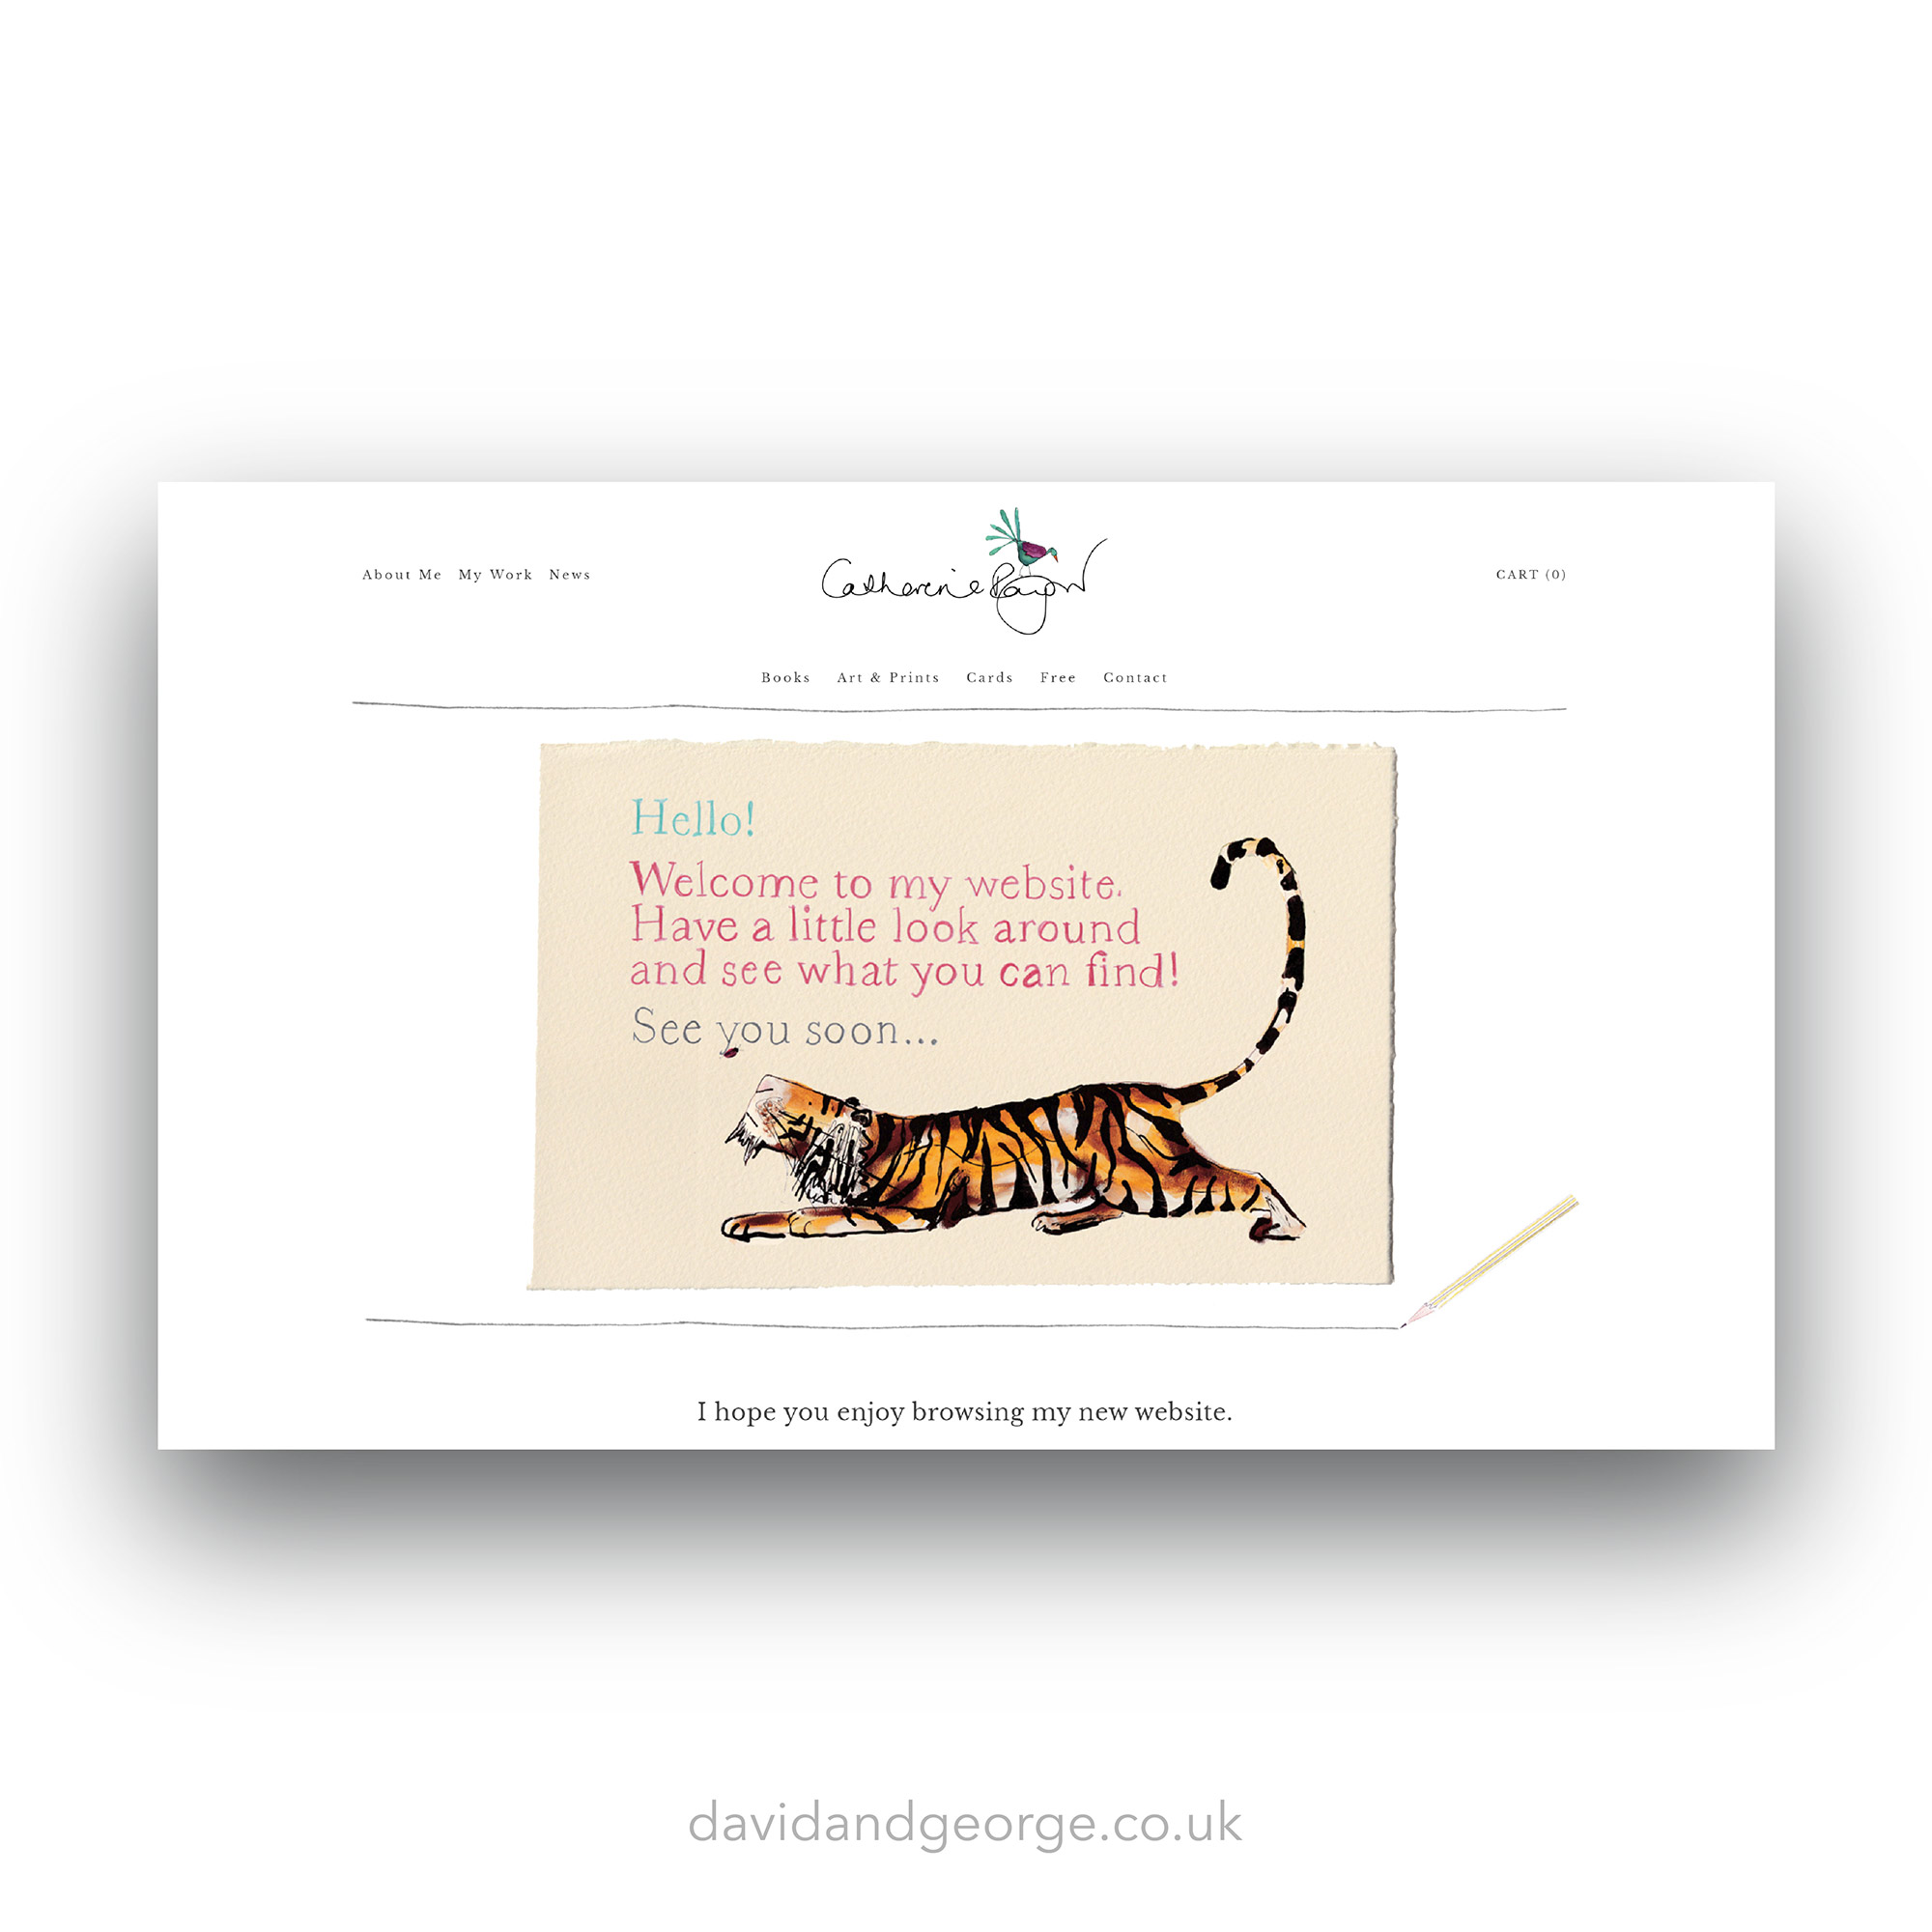 squarespace-website-design-london-edinburgh-uk-david-and-george-catherine-rayner-childrens-book-illustrator.jpg